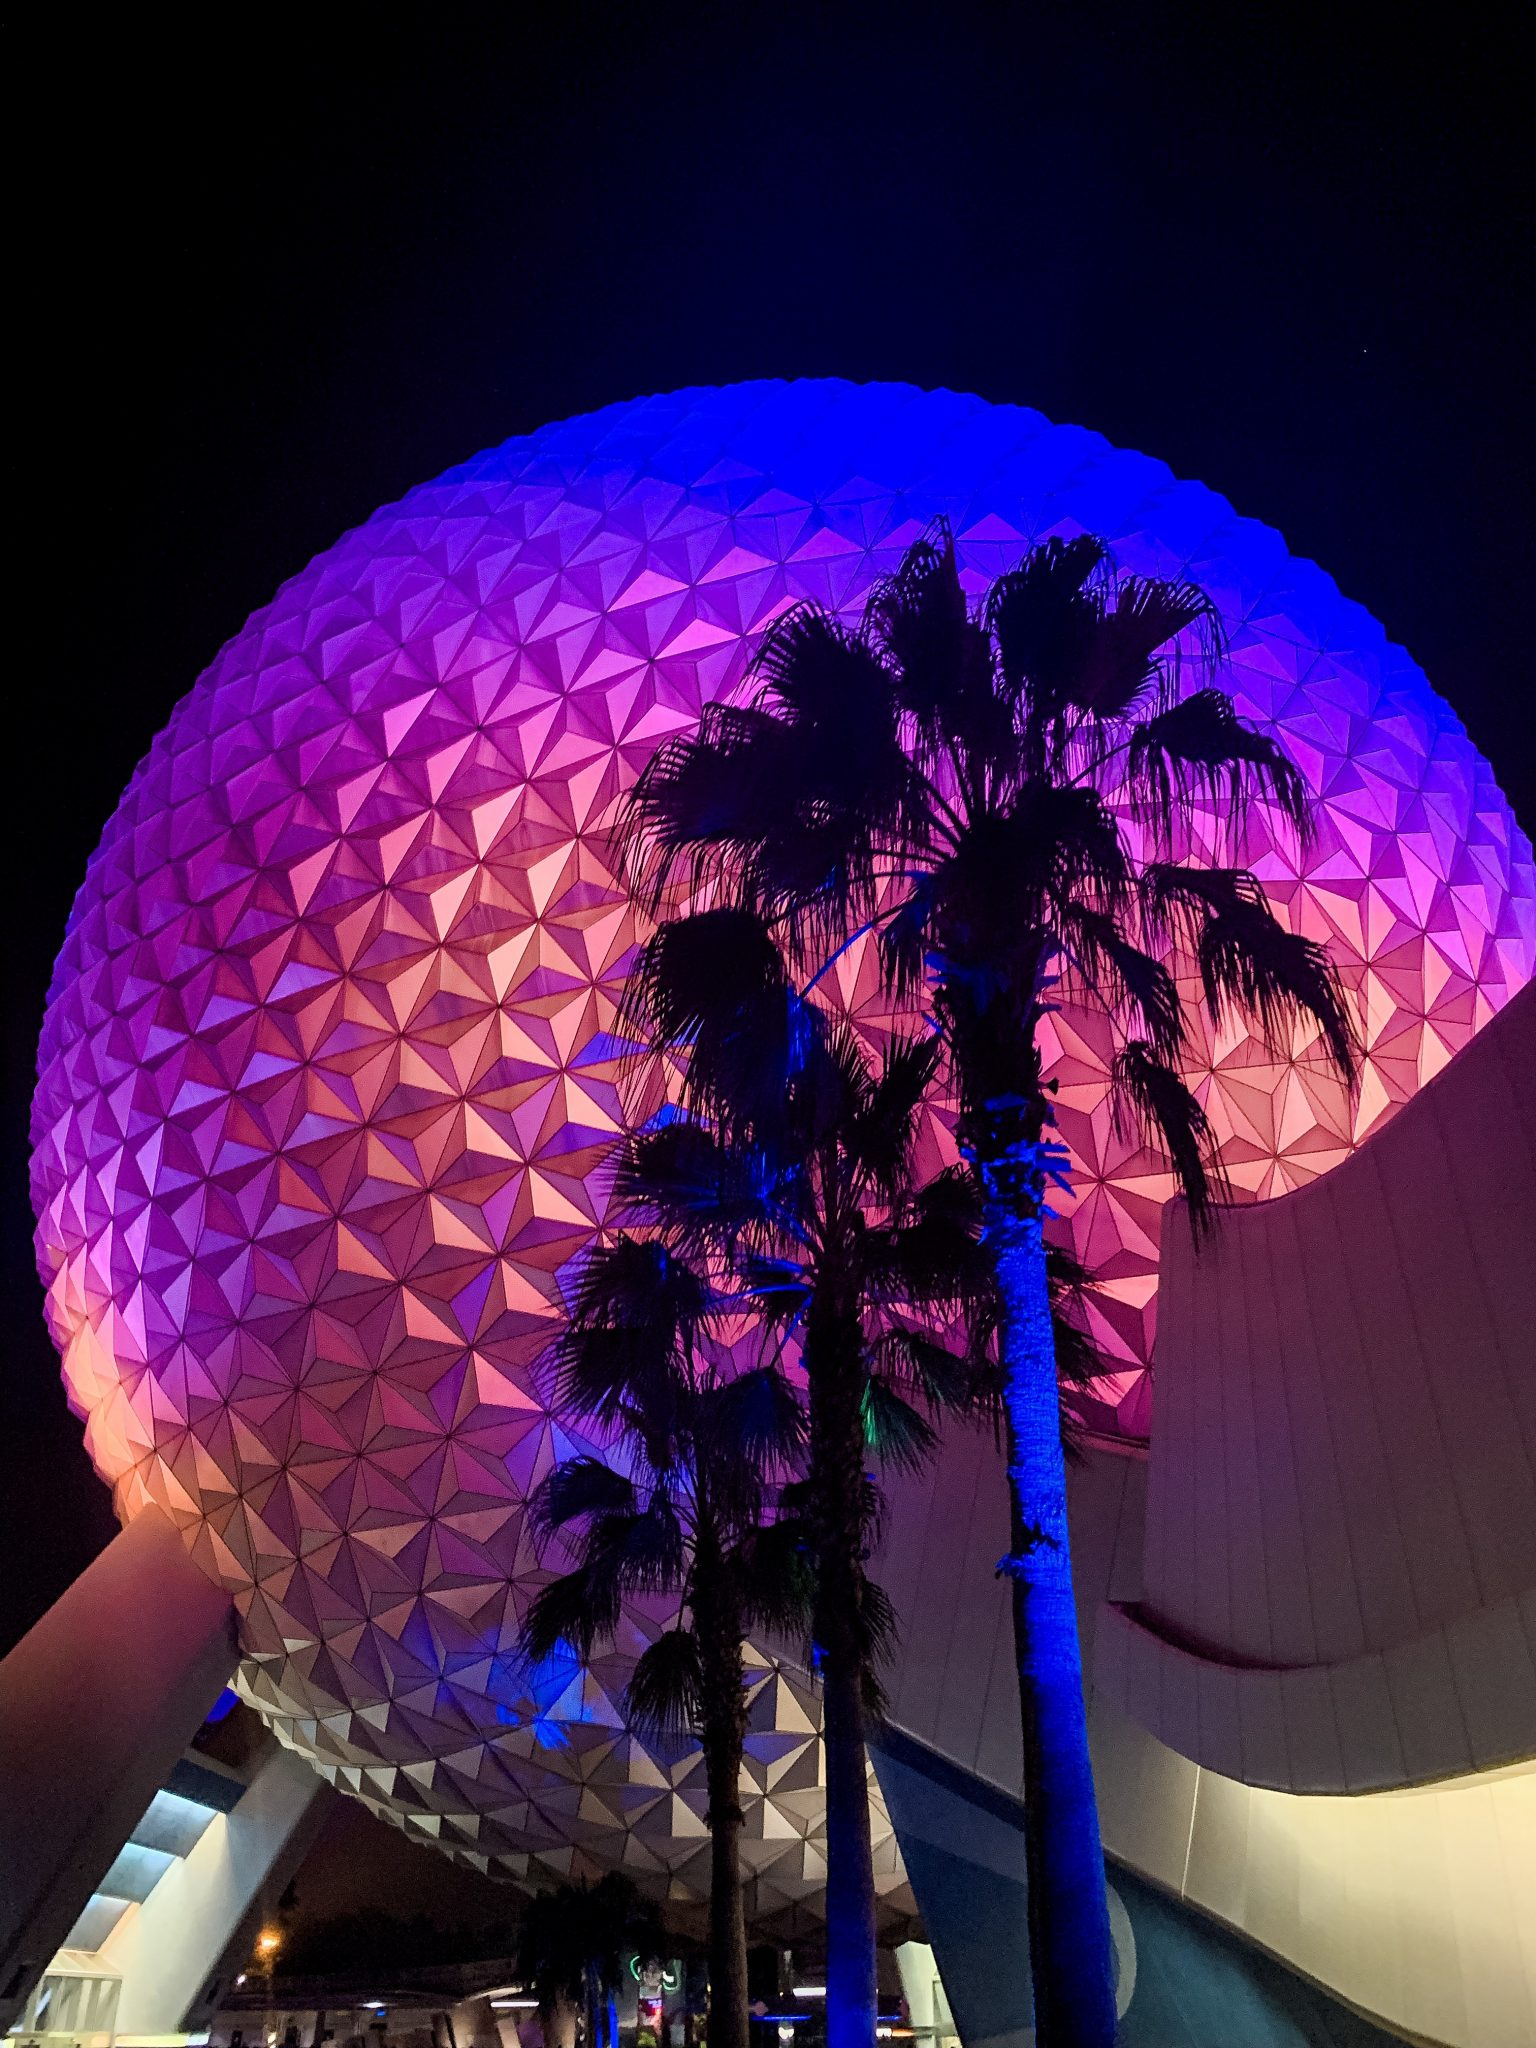 Spaceship Earth at Disney's Epcot